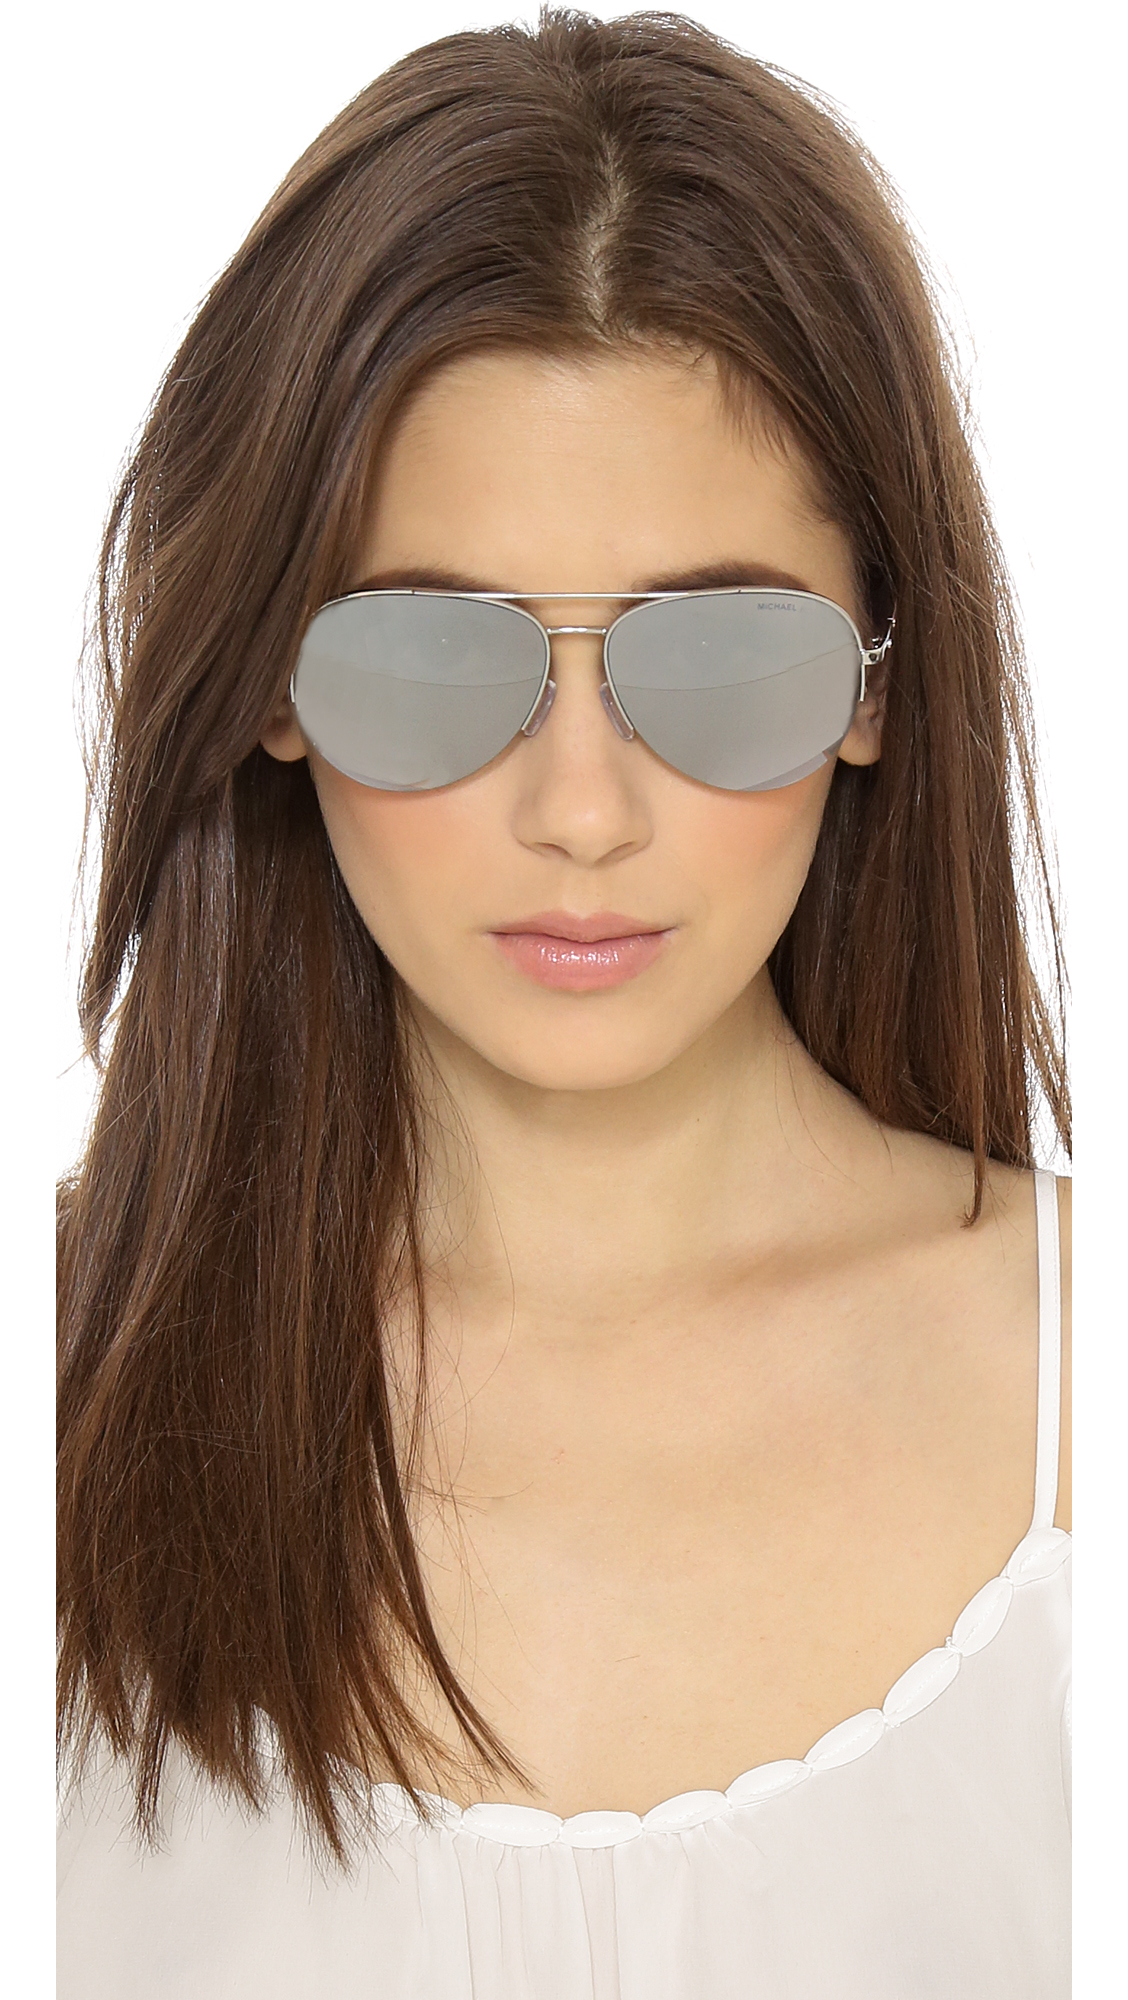 Michael Kors Mirrored Sunglasses  michael kors gramercy sunglasses silver light silver flash in